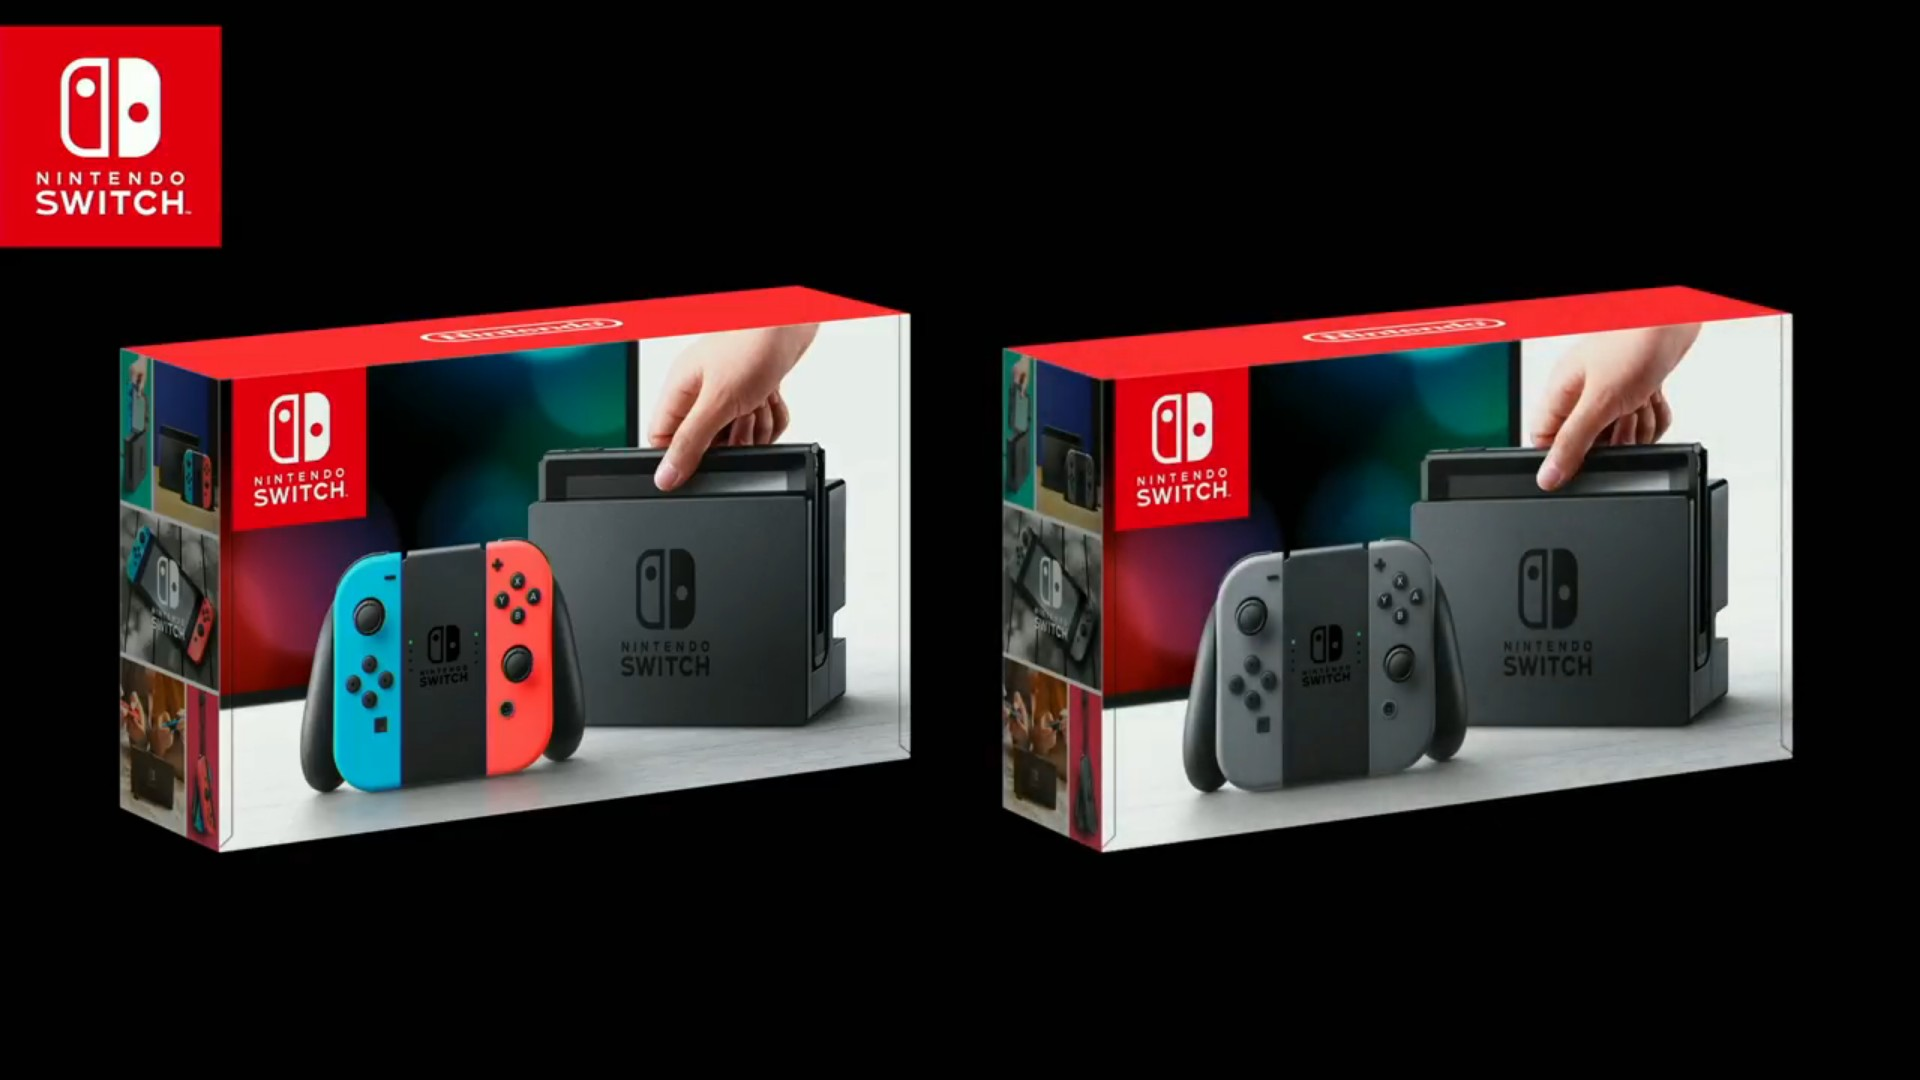 Nintendo Switch configurations